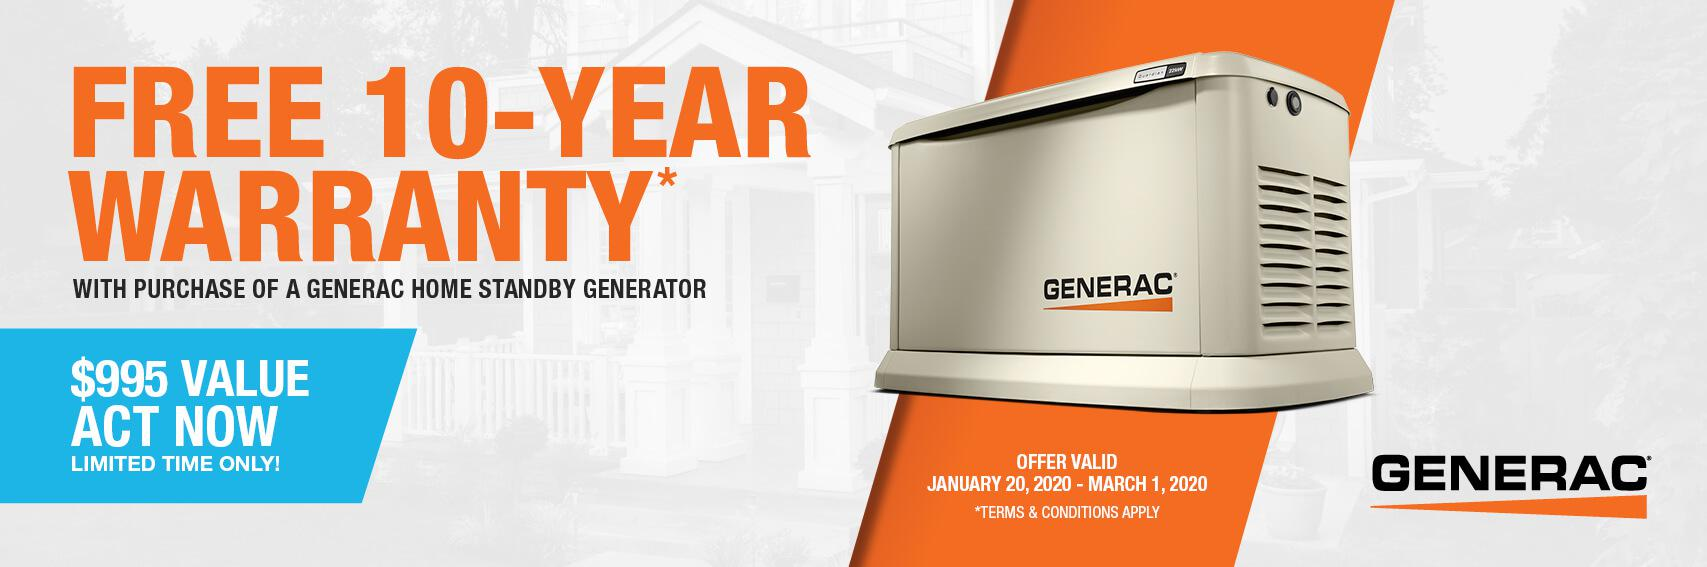 Homestandby Generator Deal | Warranty Offer | Generac Dealer | Orlando, FL